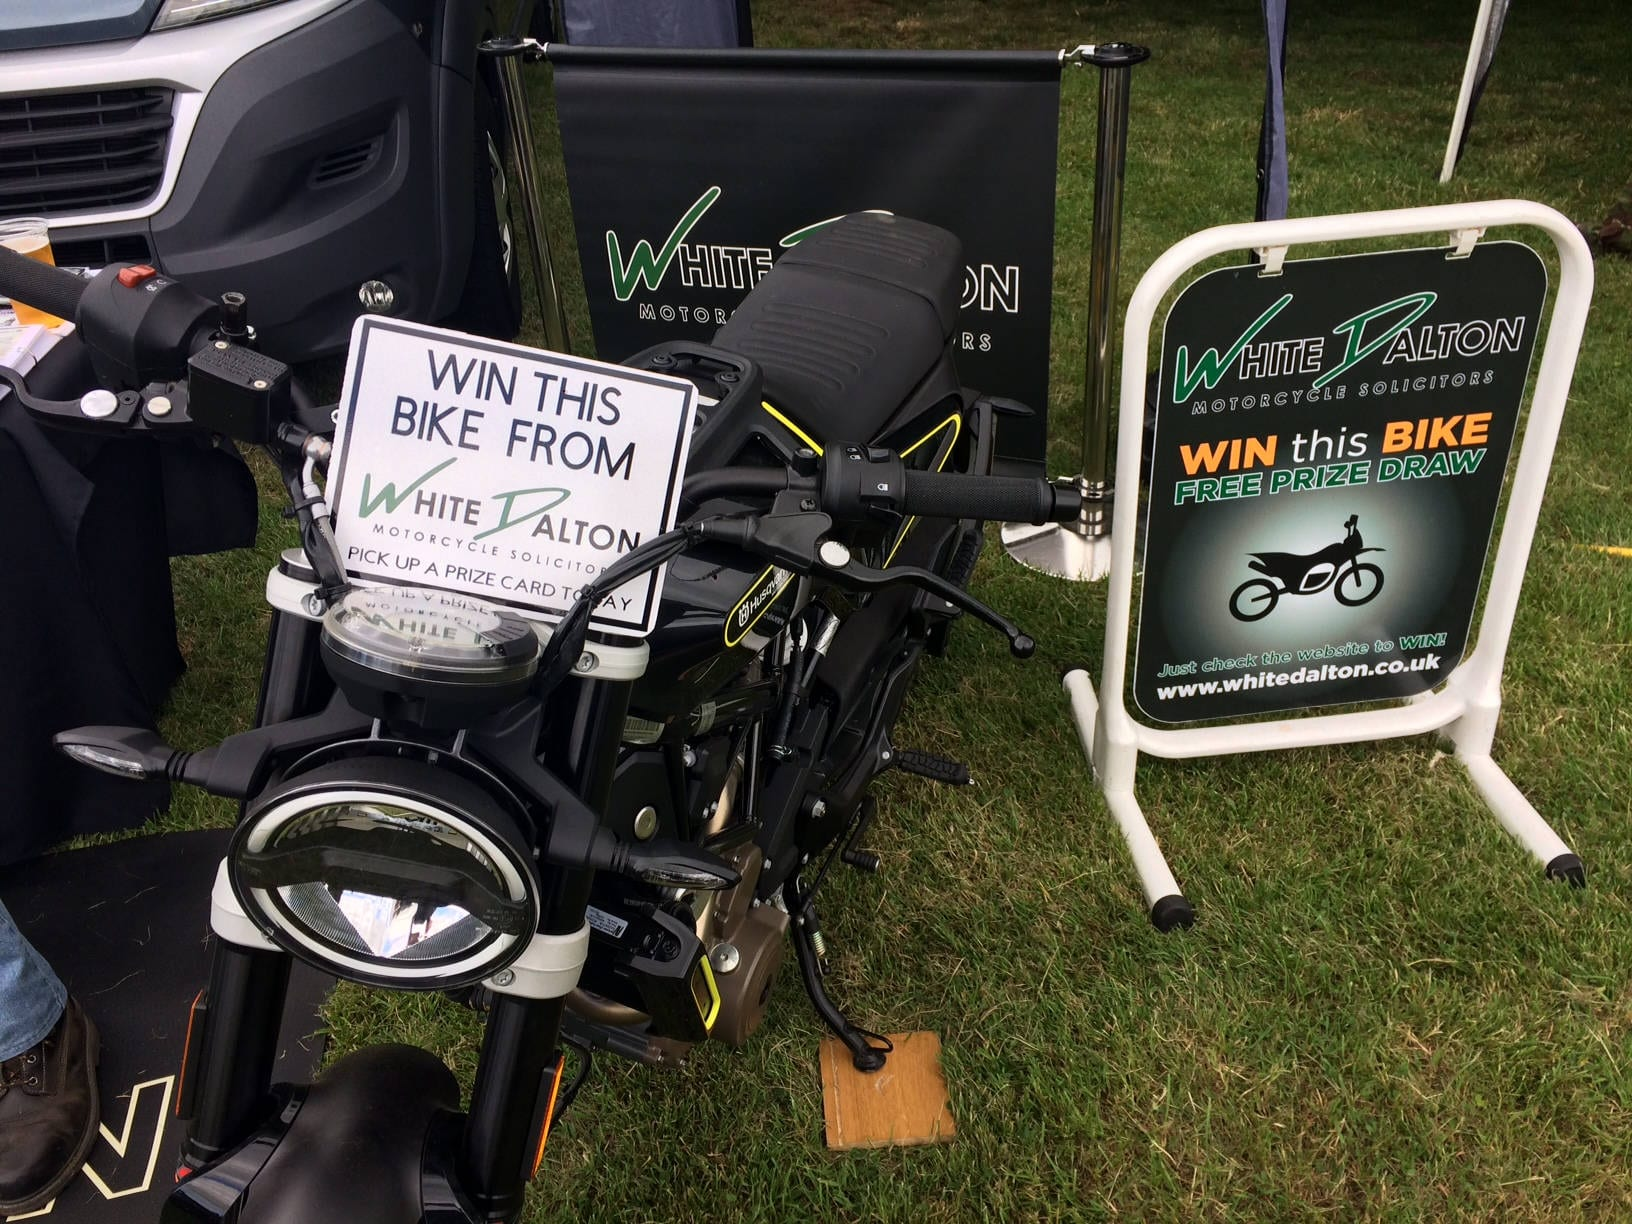 Ludgershall Bike Night 2019 - White Dalton Motorcycle Solicitors